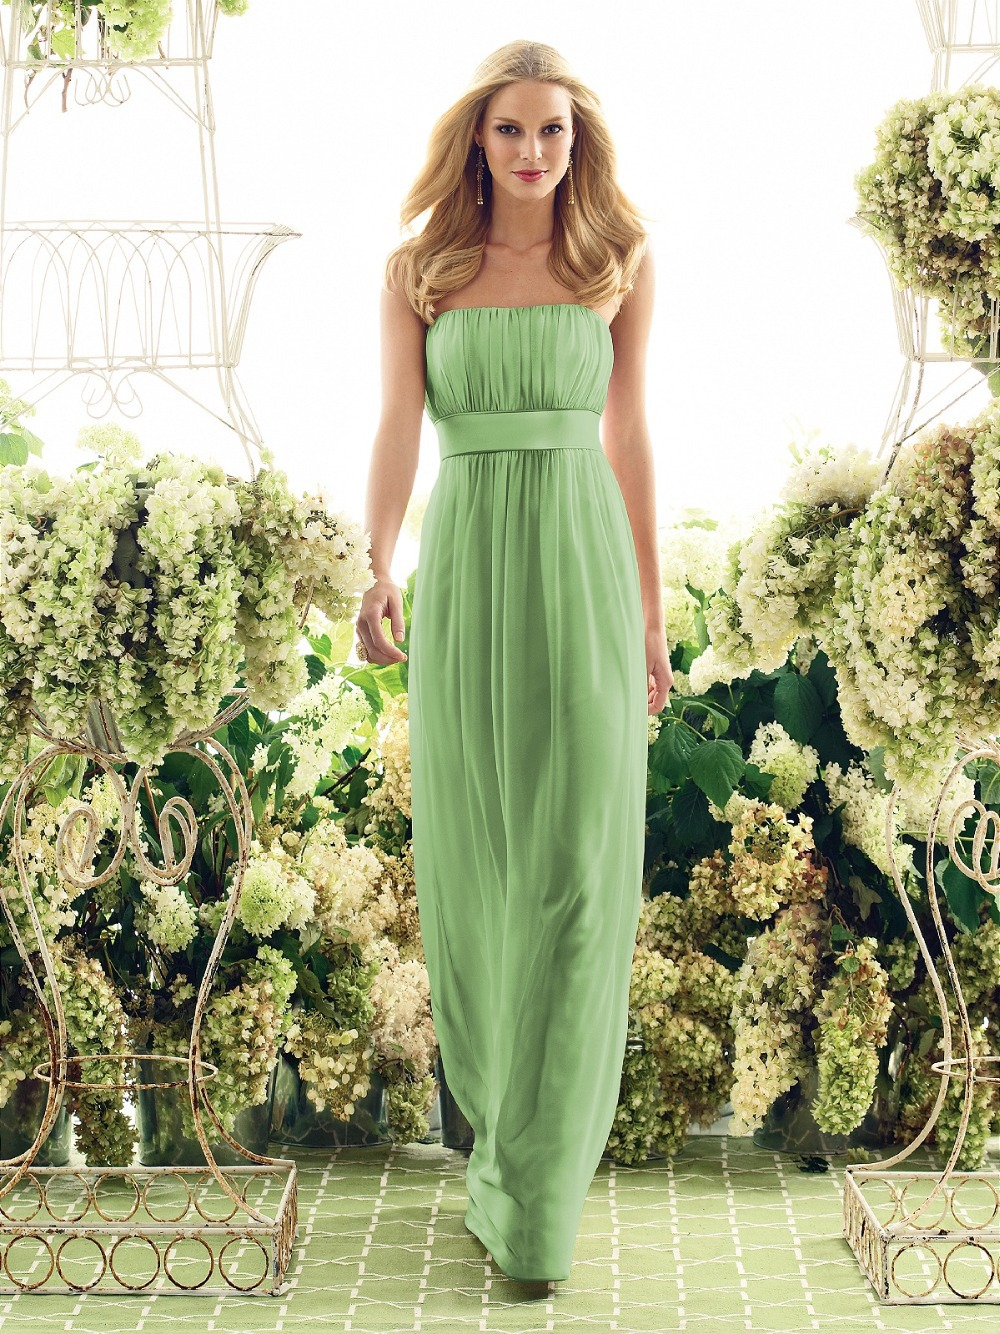 Aliexpress buy apple green bridesmaids dresses high quality aliexpress buy apple green bridesmaids dresses high quality 2016 new style long chiffon maid of honor gowns plus sizebd 0138 from reliable maid of ombrellifo Choice Image